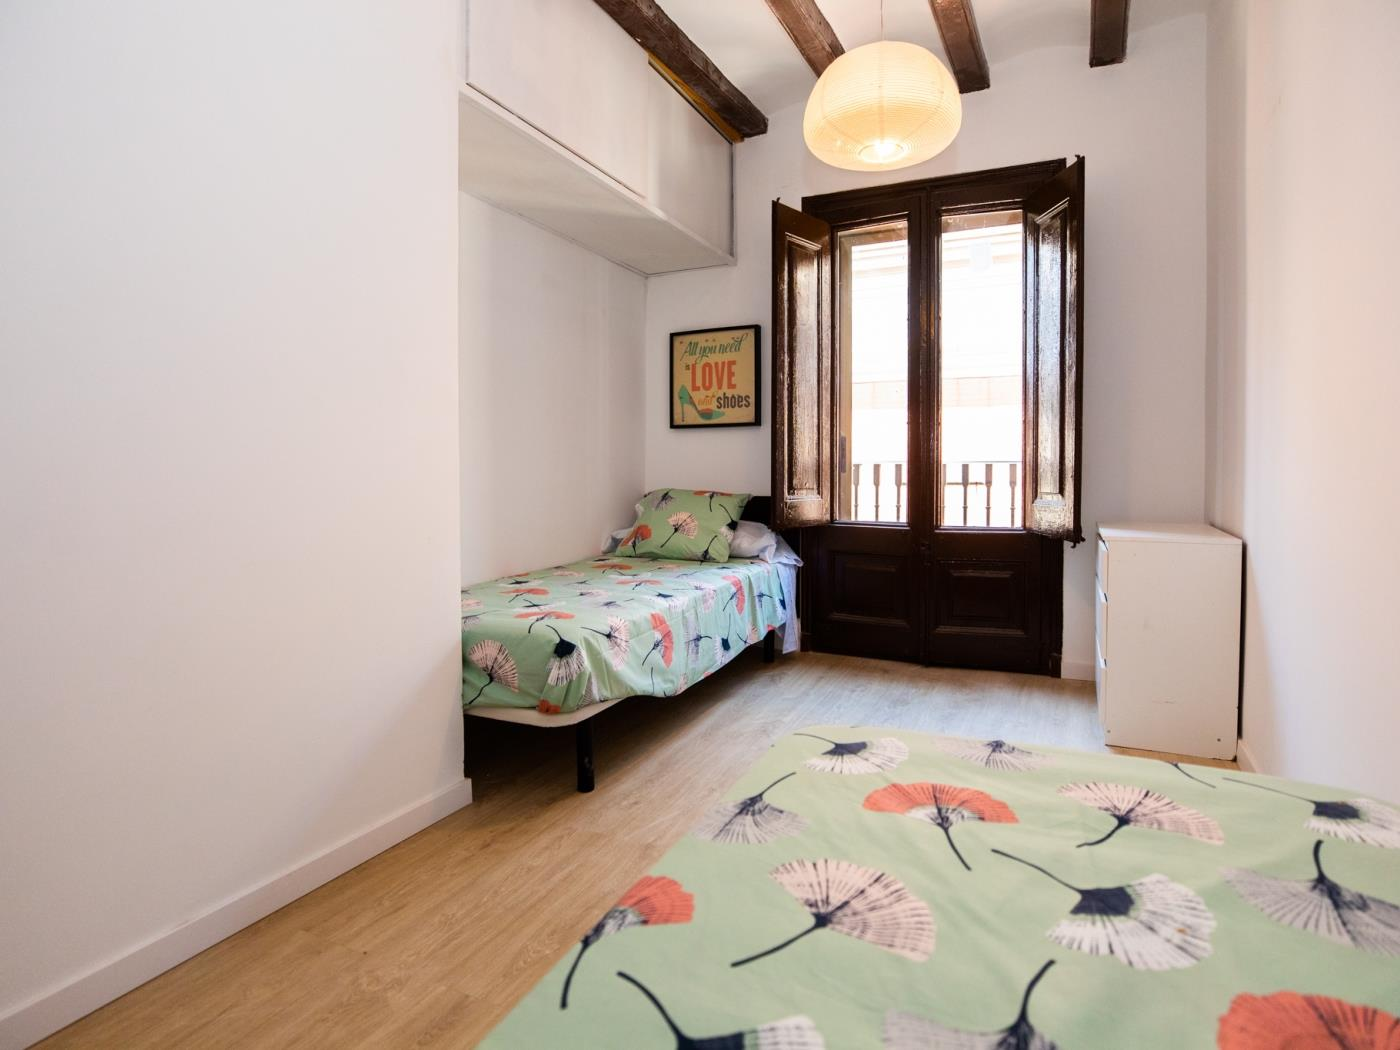 Appartement charmant au coeur de Barcelone, dans le quartier gothique pour 4 - My Space Barcelona Appartements